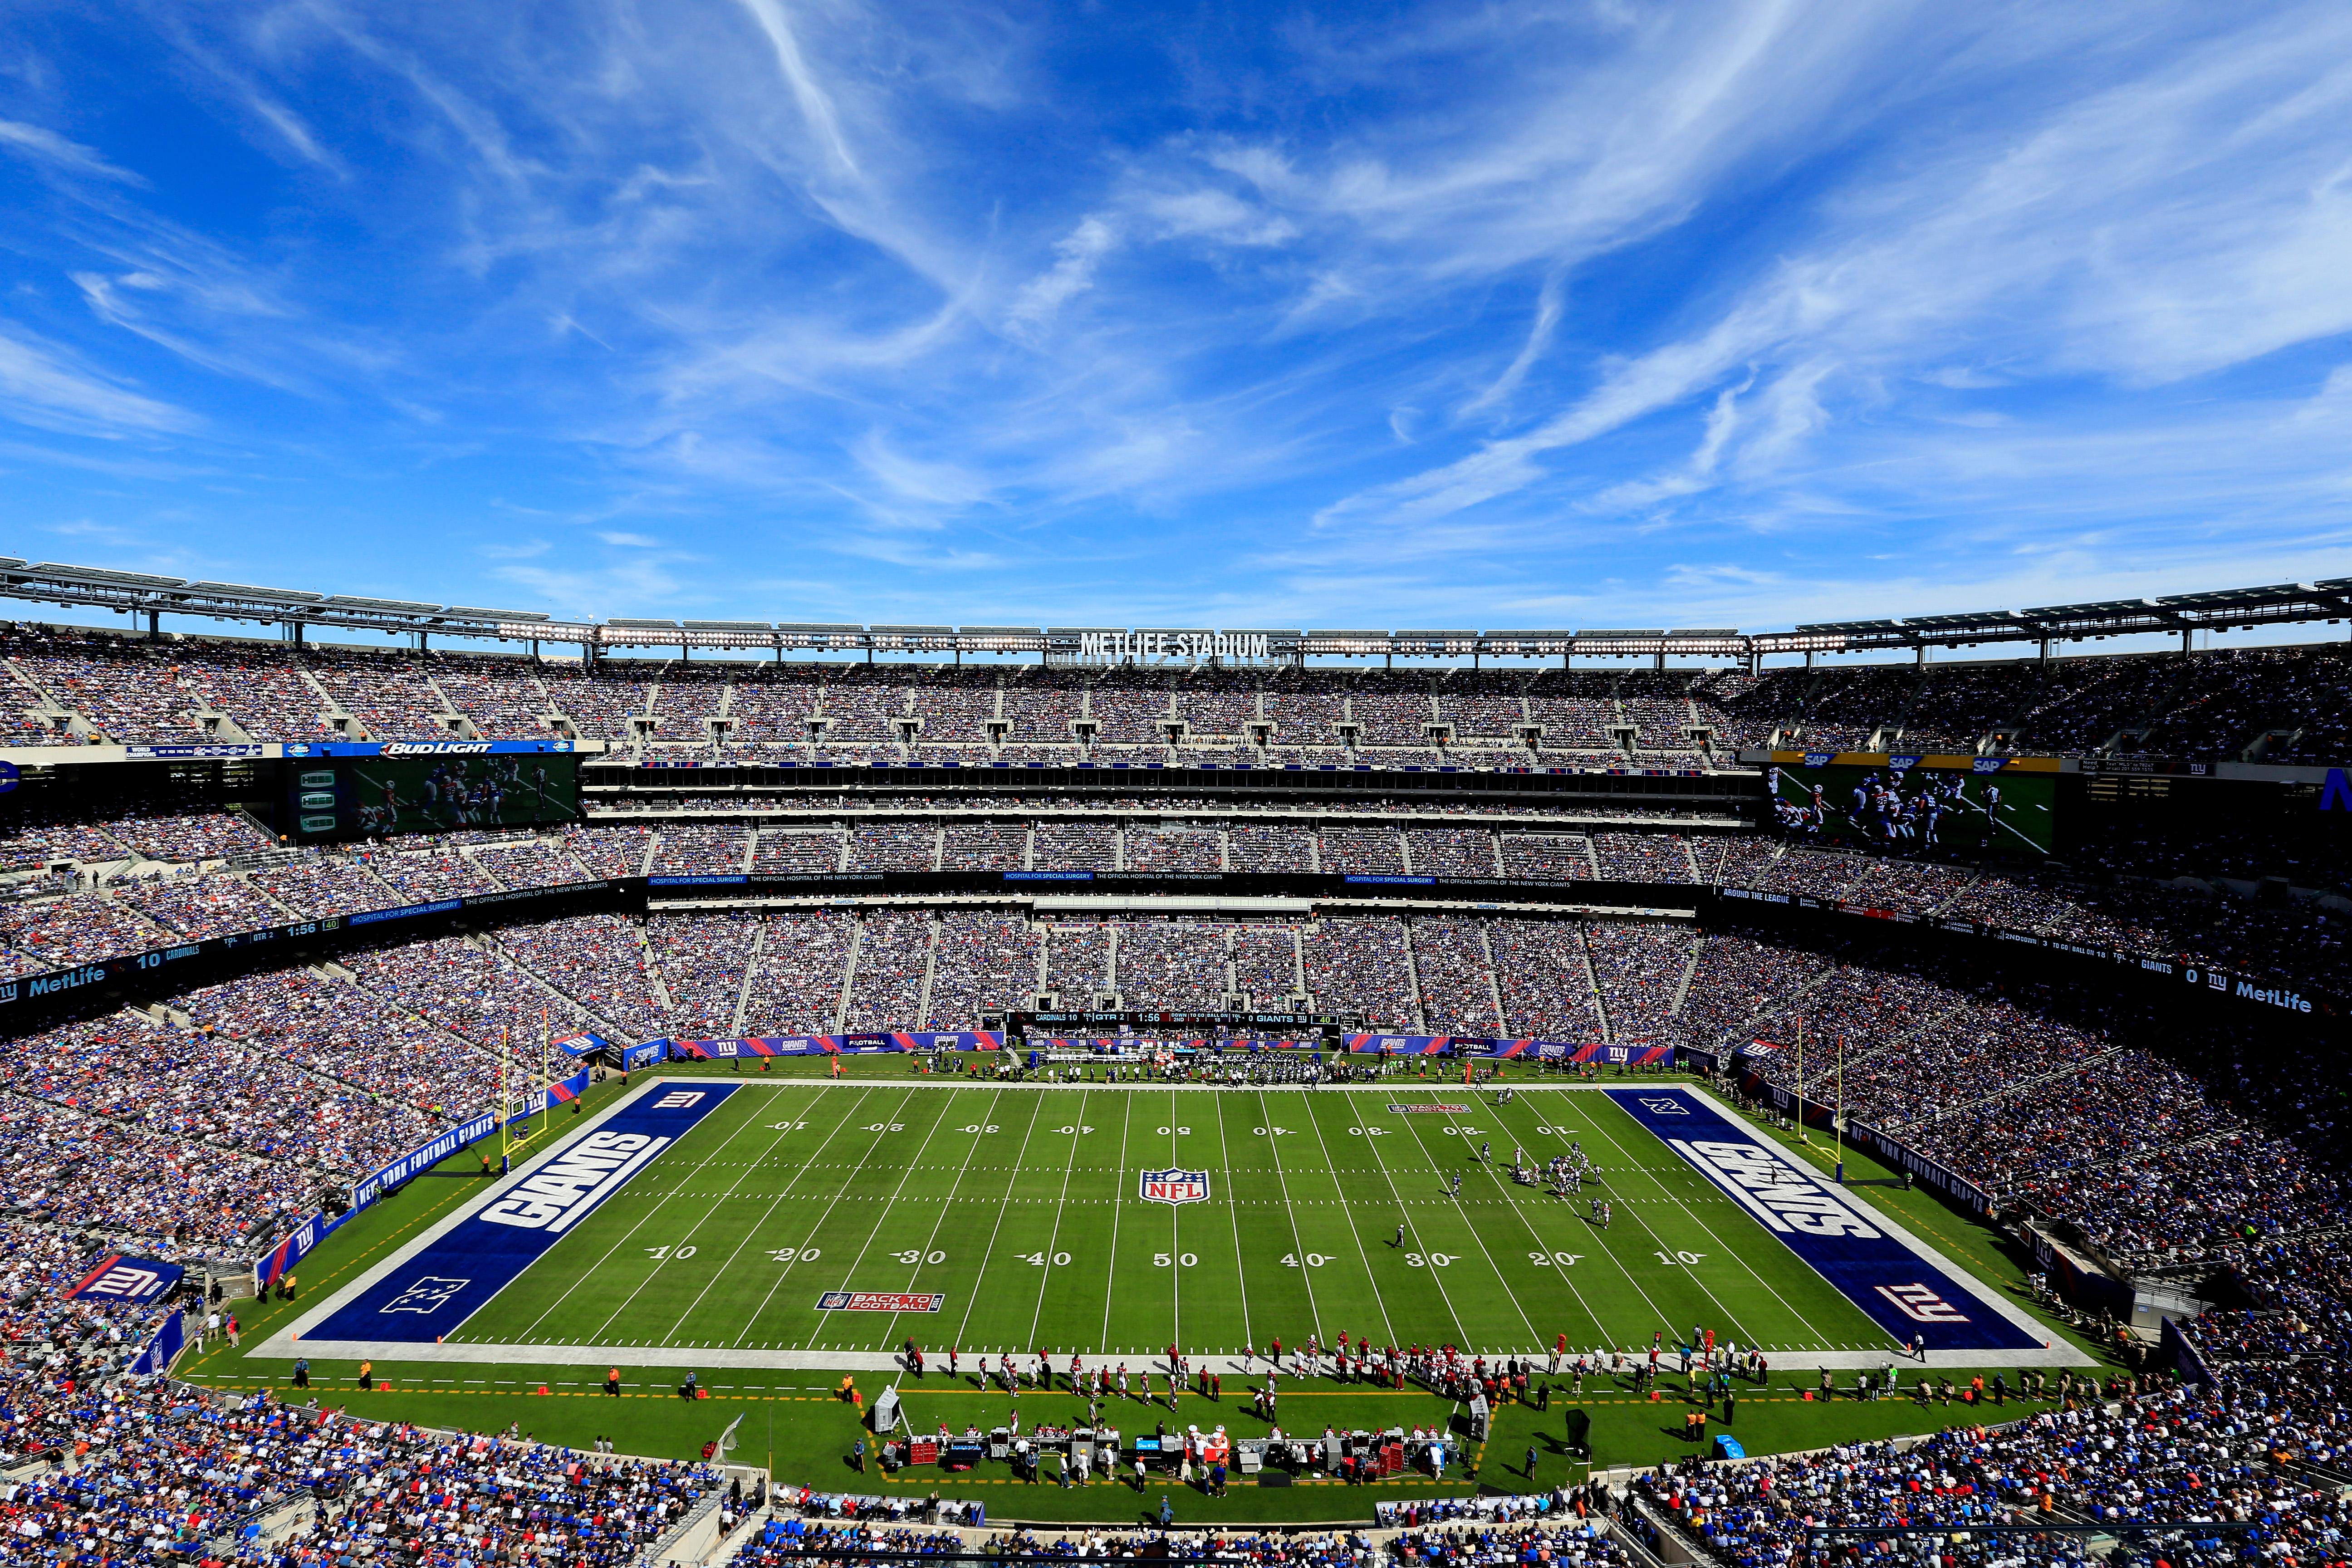 The MetLife Stadium was only very recently eclipsed as the most expensive stadium in the world